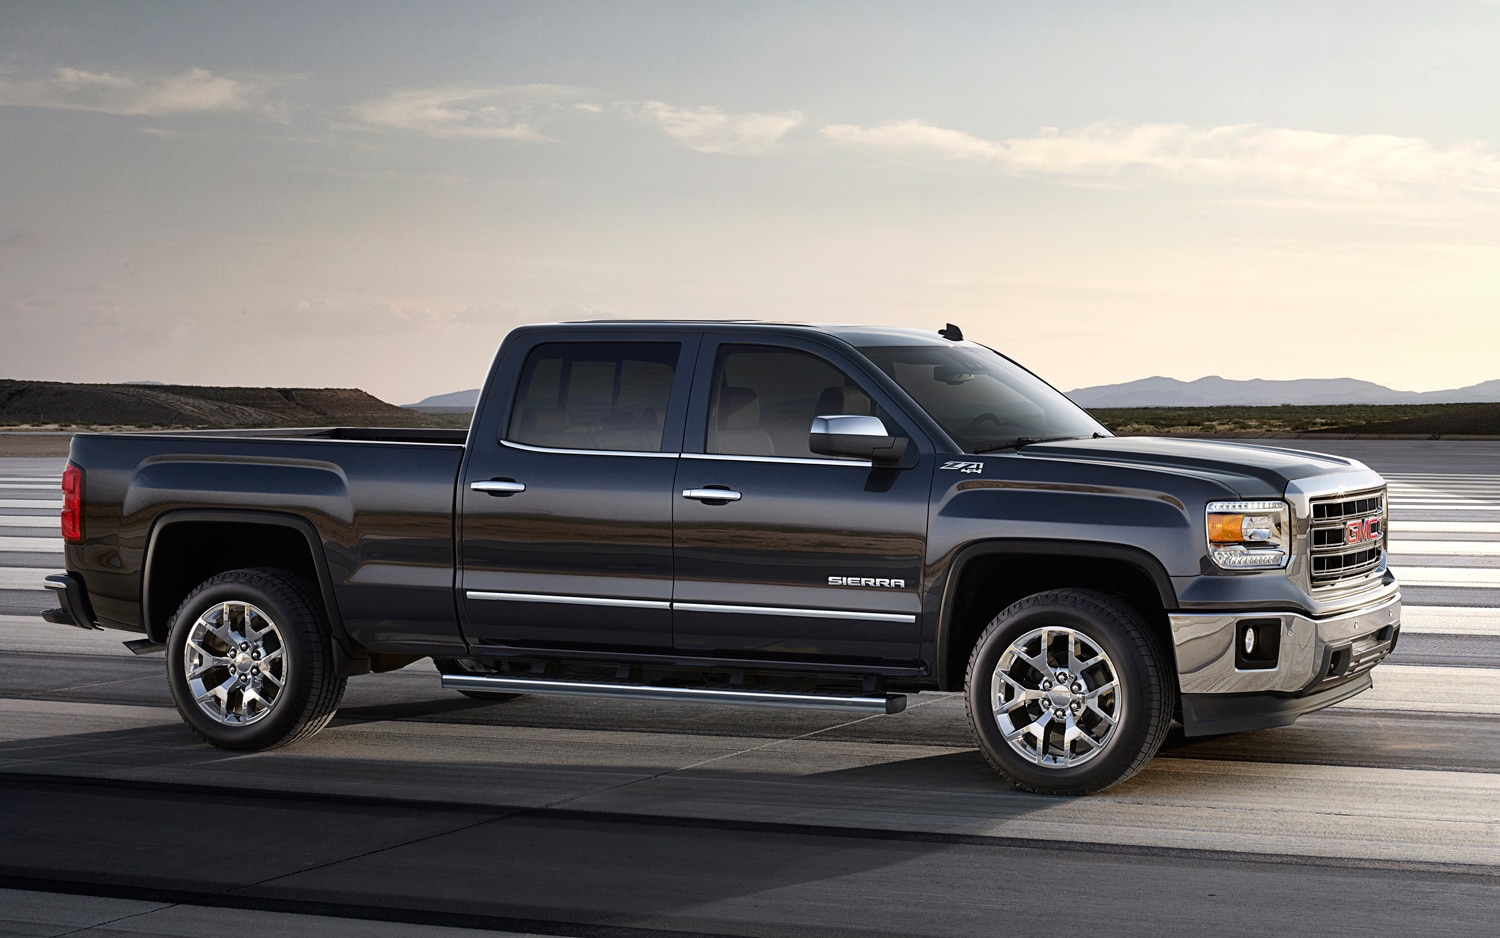 2014 GMC Sierra Side Profile